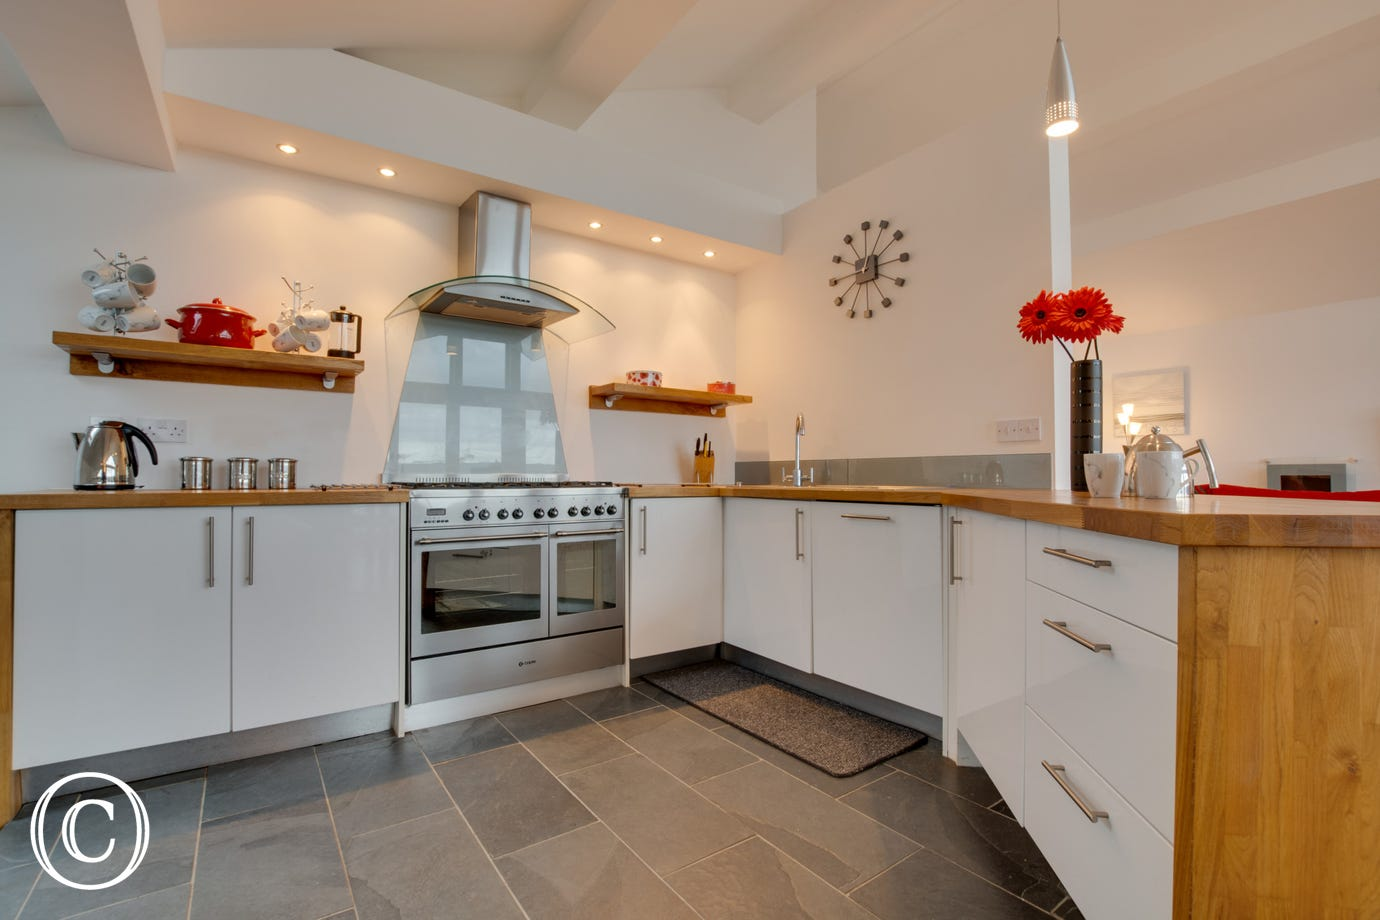 Self catering holiday home in Saundersfoot. Kitchen area